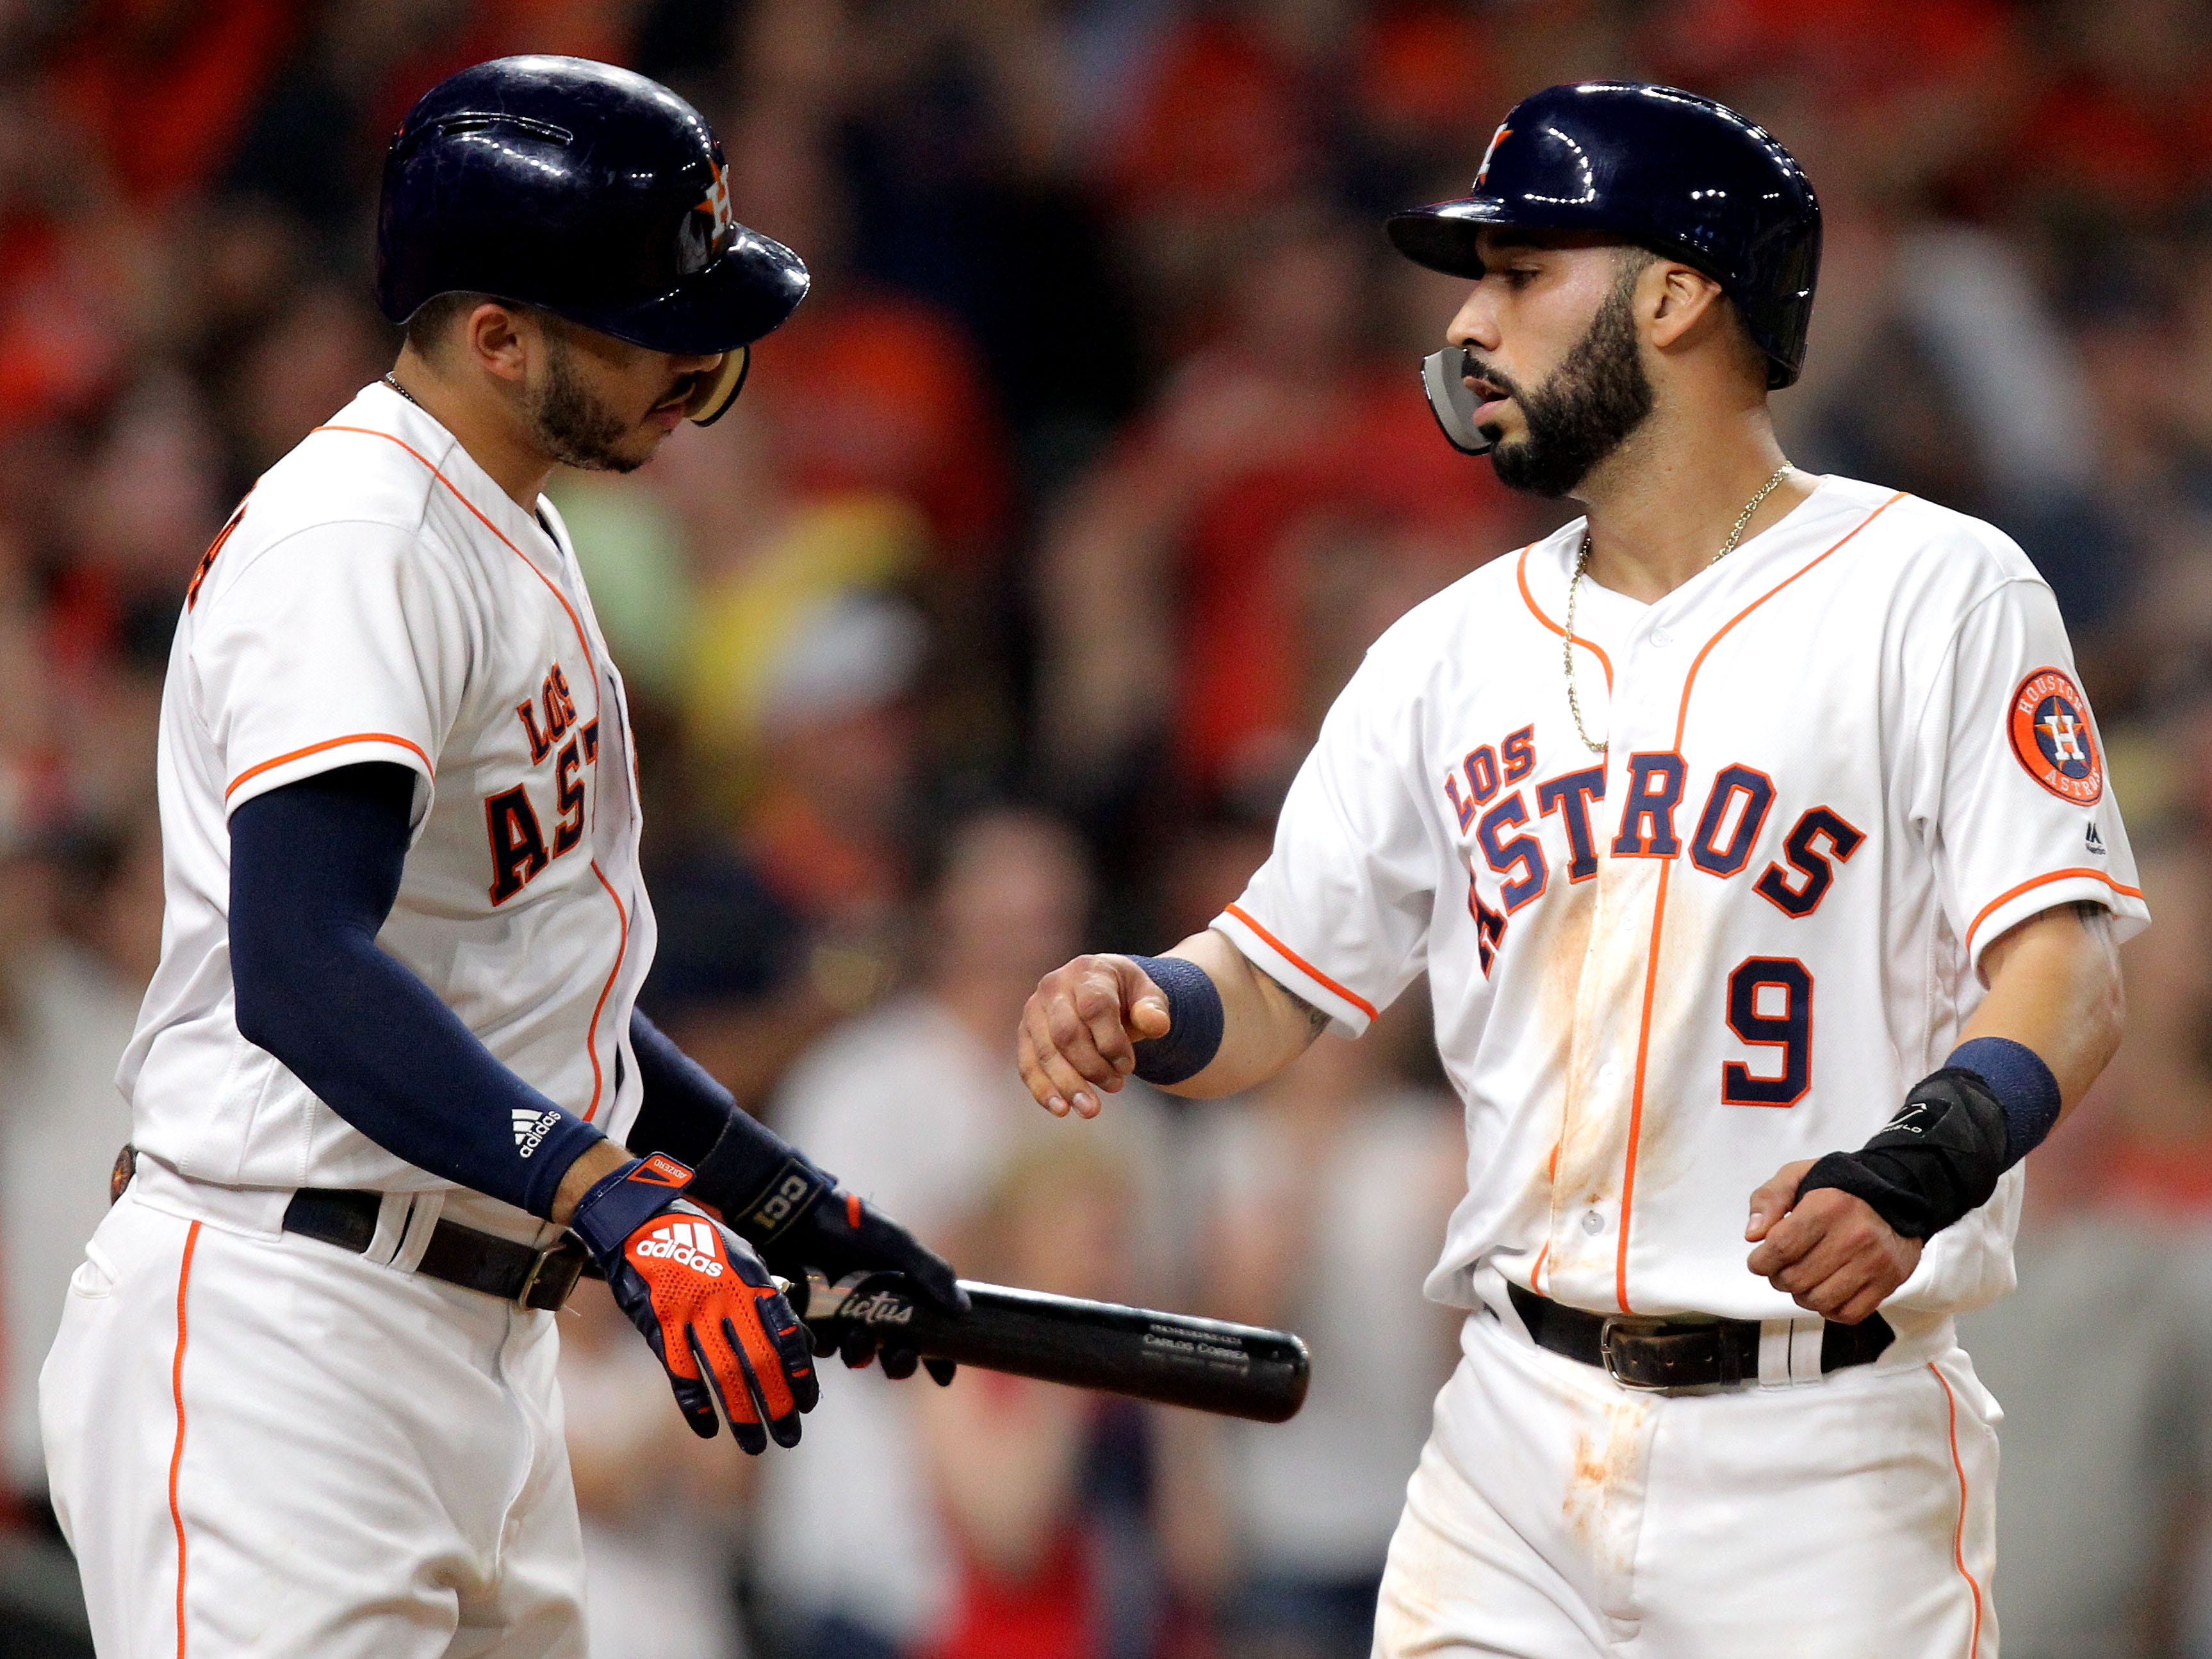 Sep 15, 2018; Houston, TX, USA; Houston Astros left fielder Marwin Gonzalez (9, right) is congratulated by Houston Astros shortstop Carlos Correa (1) after scoring a run against the Arizona Diamondbacks during the fourth inning at Minute Maid Park. Mandatory Credit: Erik Williams-USA TODAY Sports